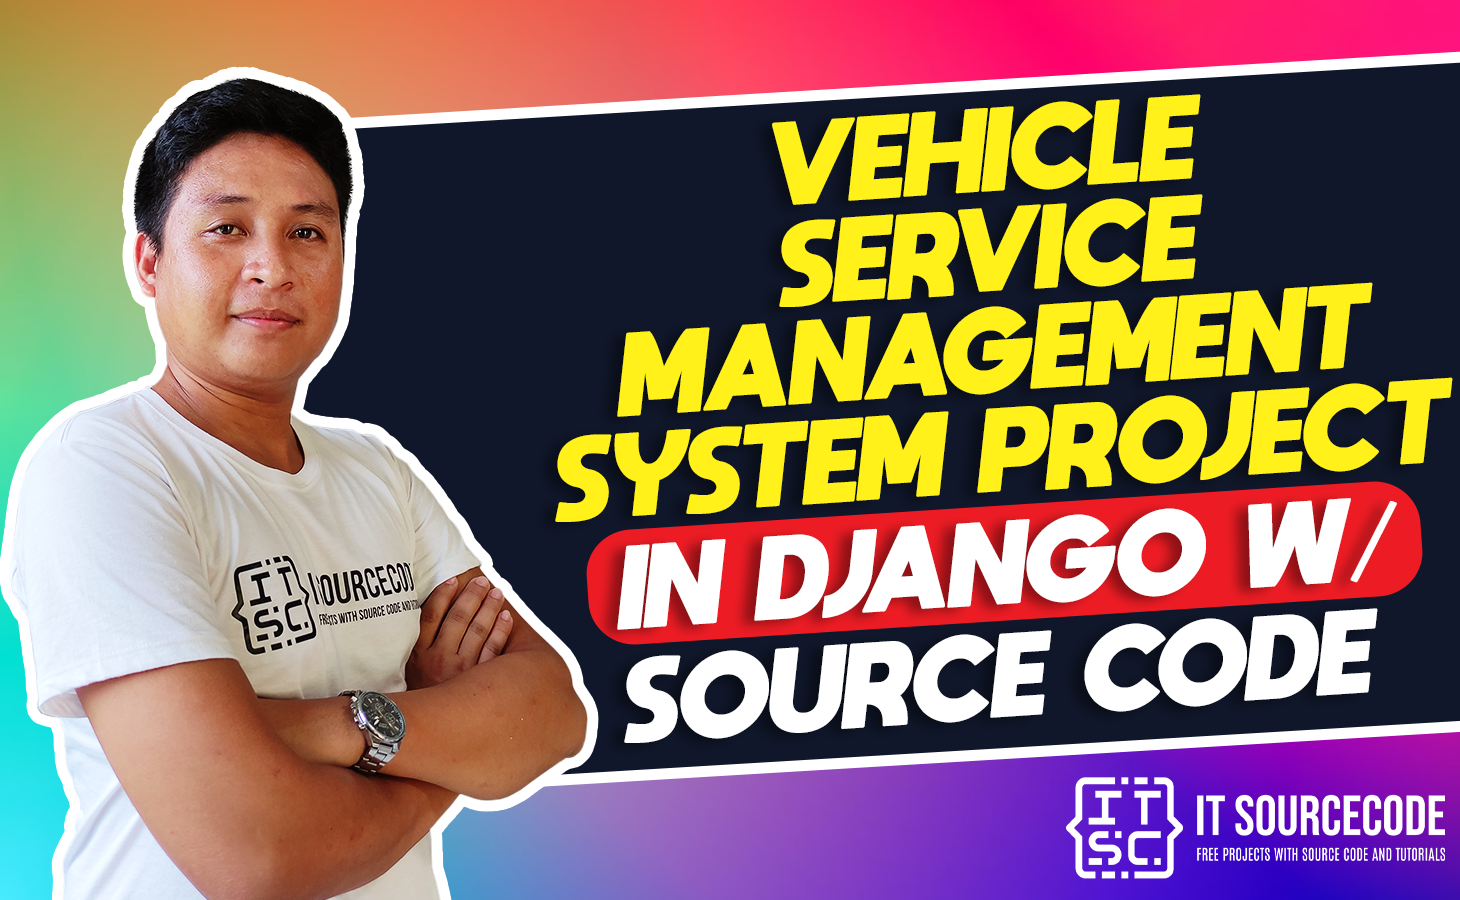 Vehicle Service Management System Project in Django with Source code